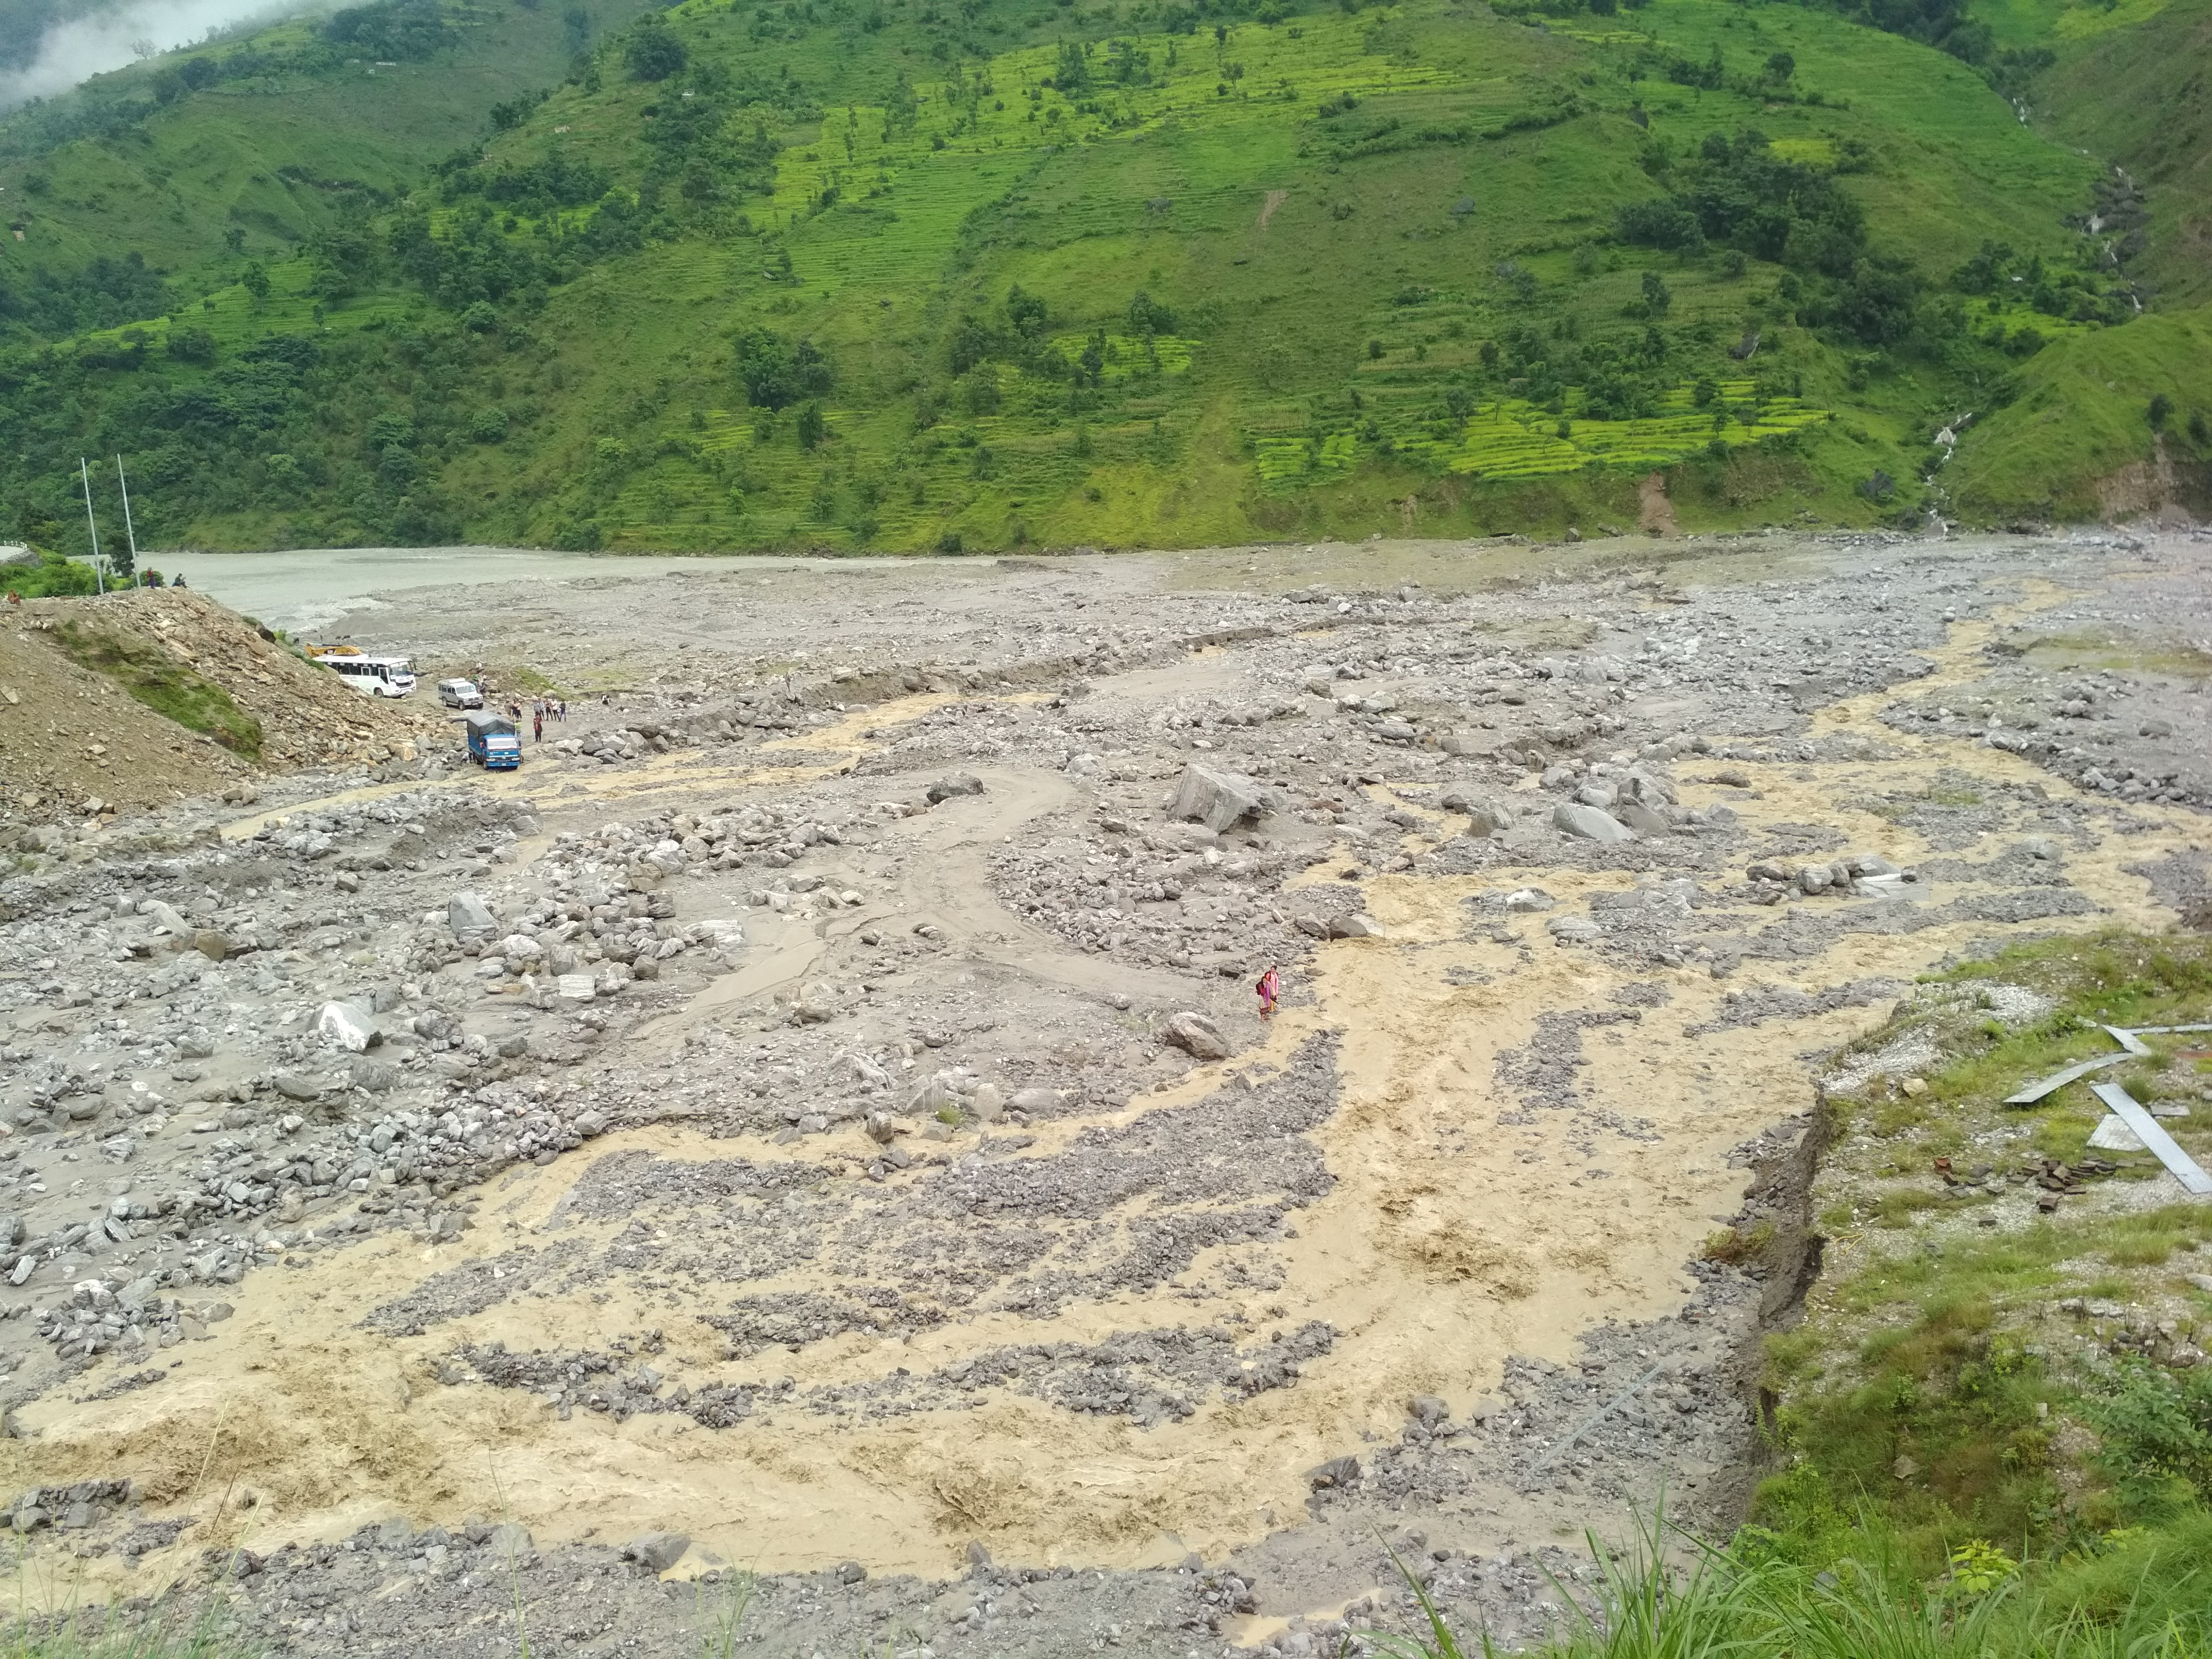 Swollen Budiganga River pictured at Guigad along Sanfe Martadi road section. The river has swept away the road halting vehicular movement. Photo: Prakash Singh/THT